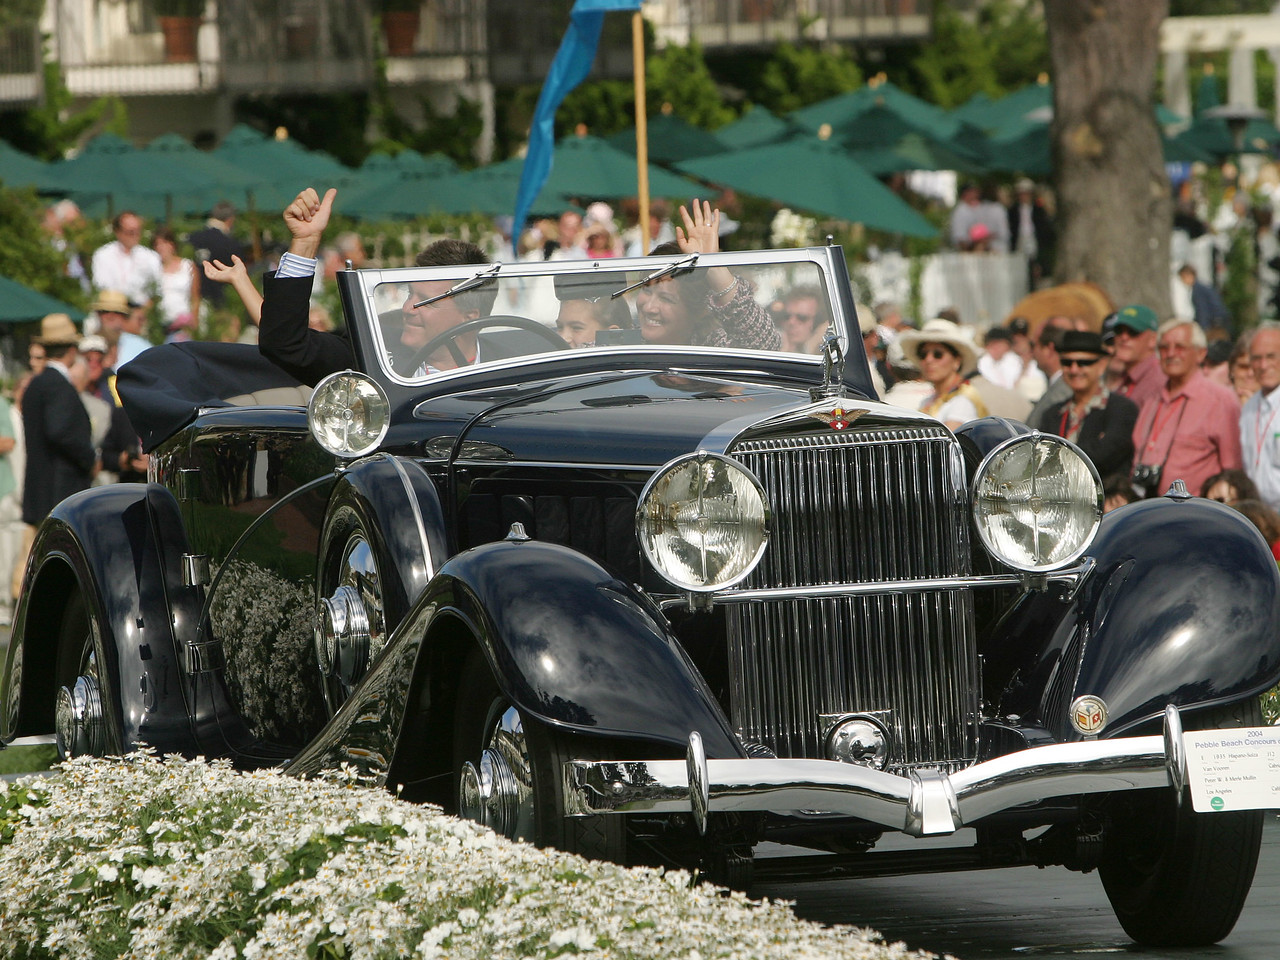 1935 Hispano-Suiza J12 Van Vooren Cabriolet.  Most Elegant Convertible Trophy.   Peter and Merle Mullin.